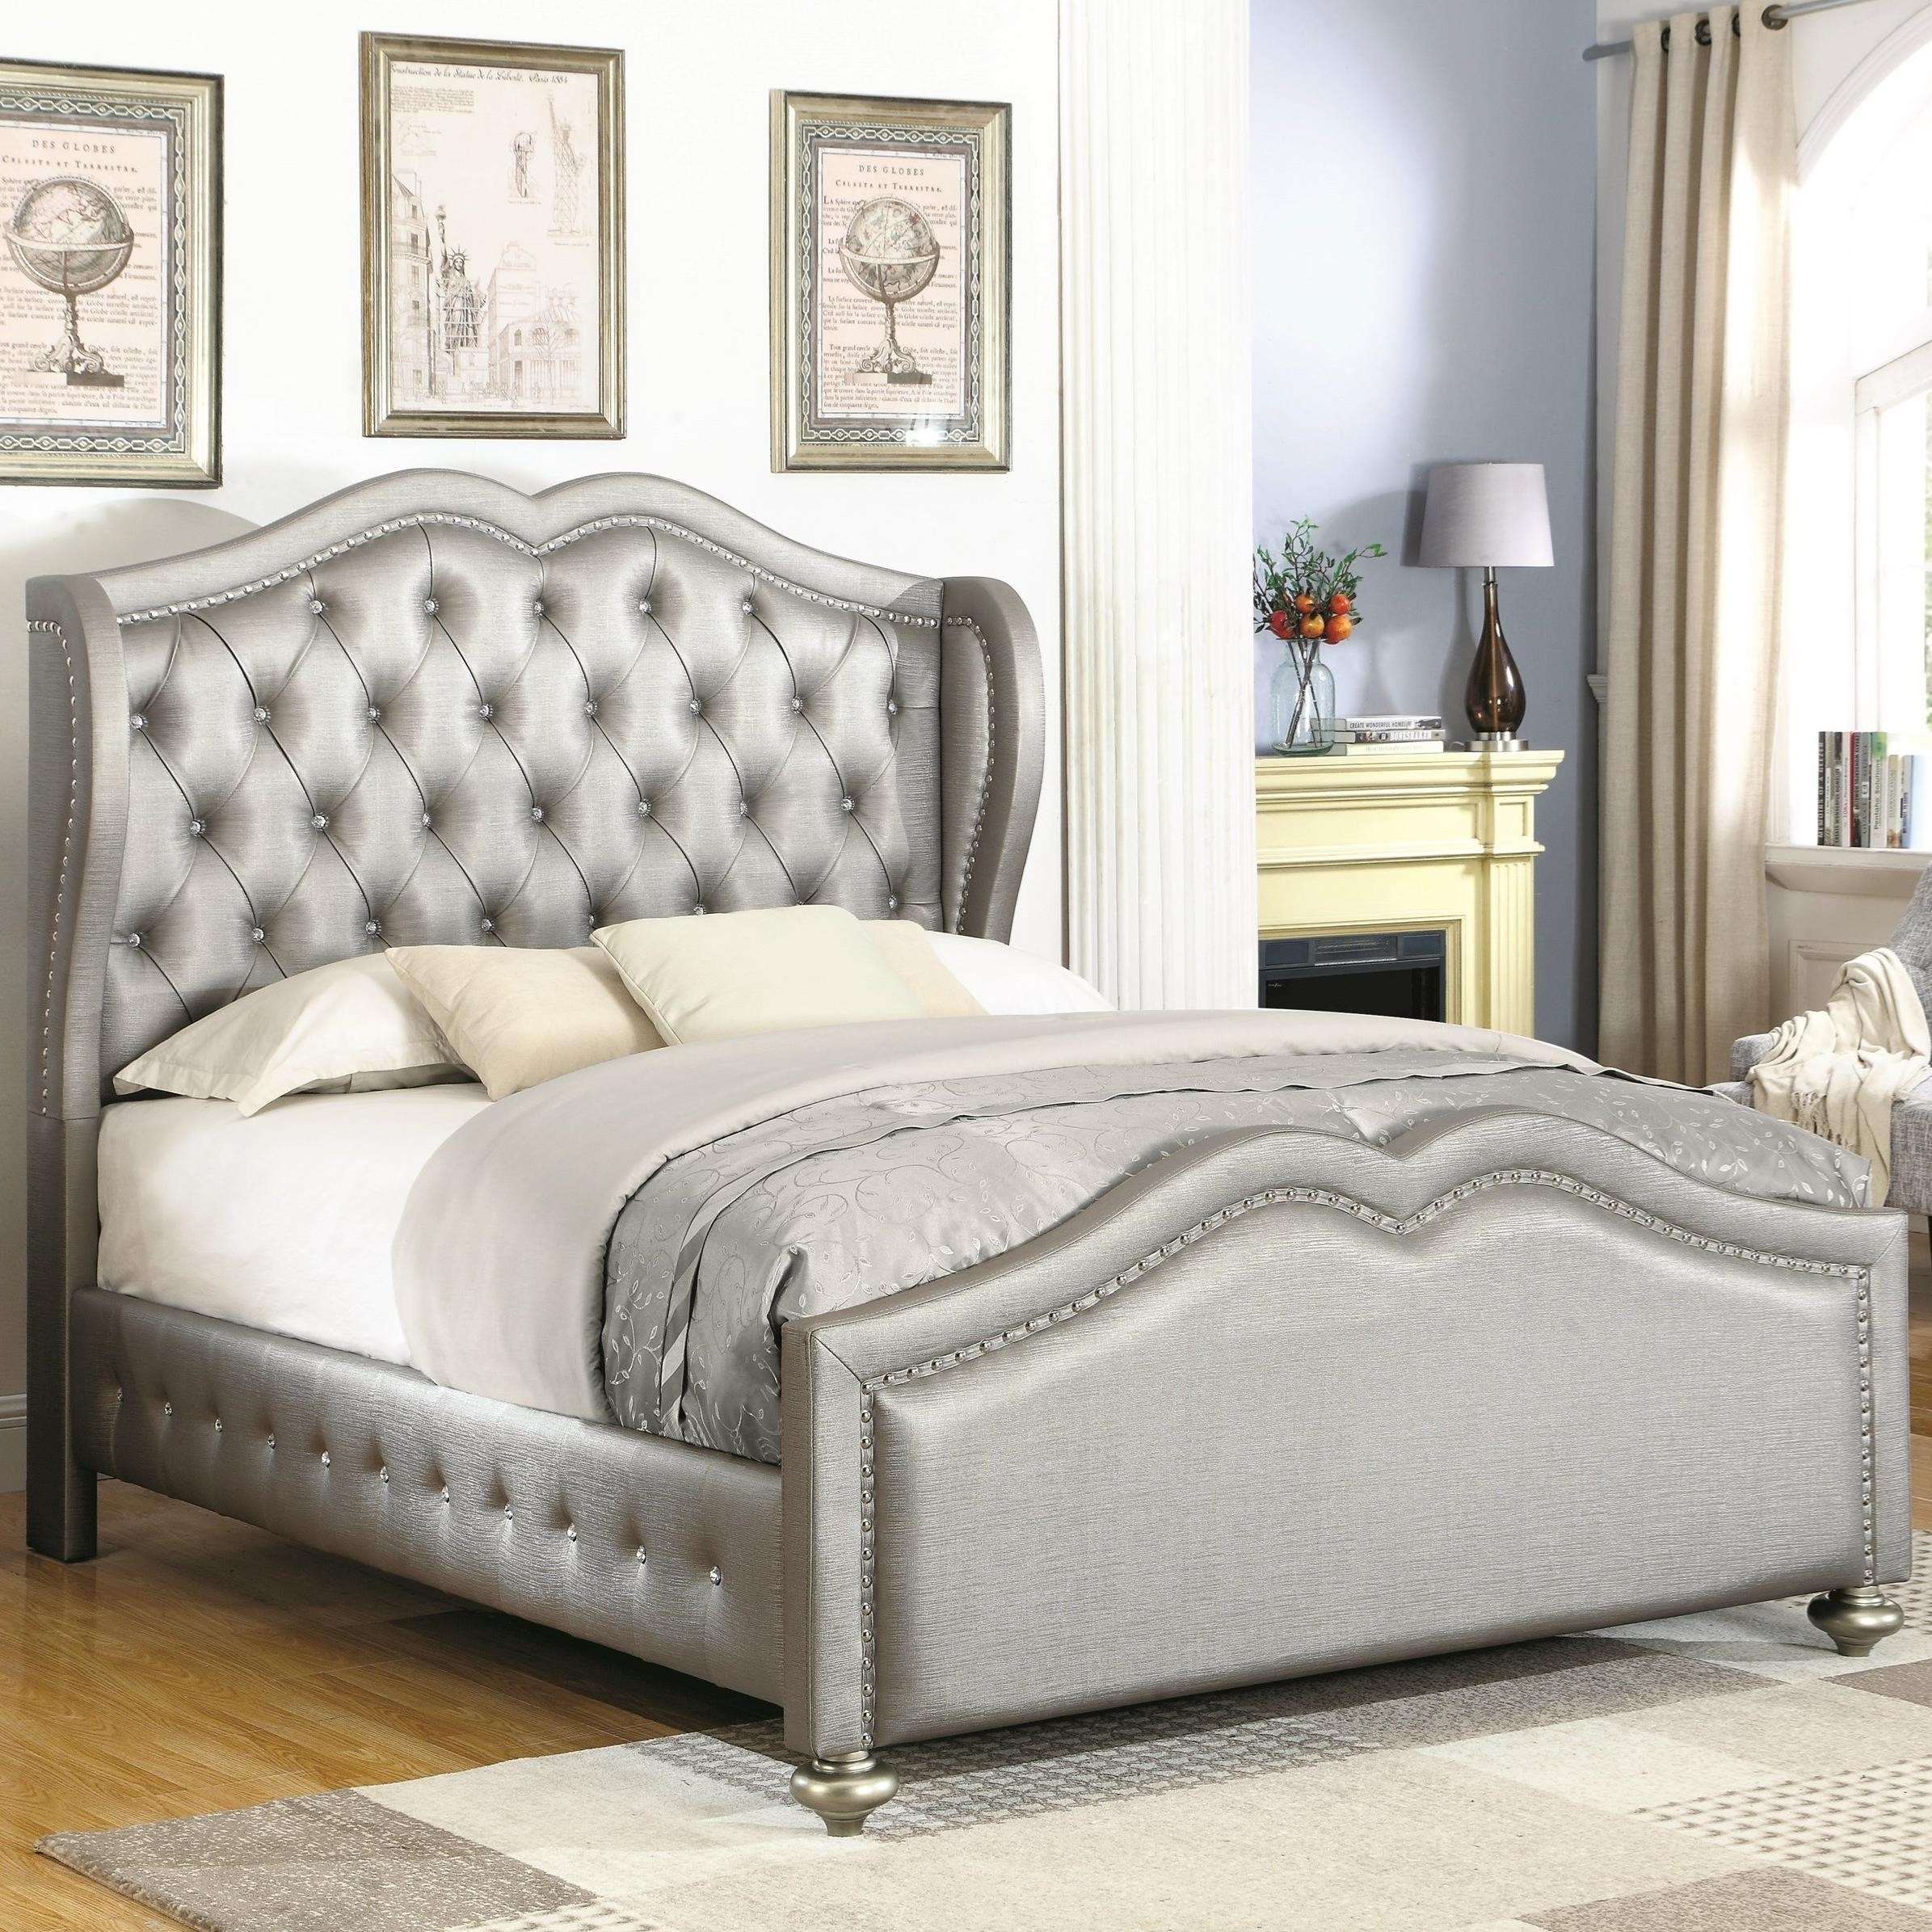 Belmont Queen Bed by Coaster at Value City Furniture